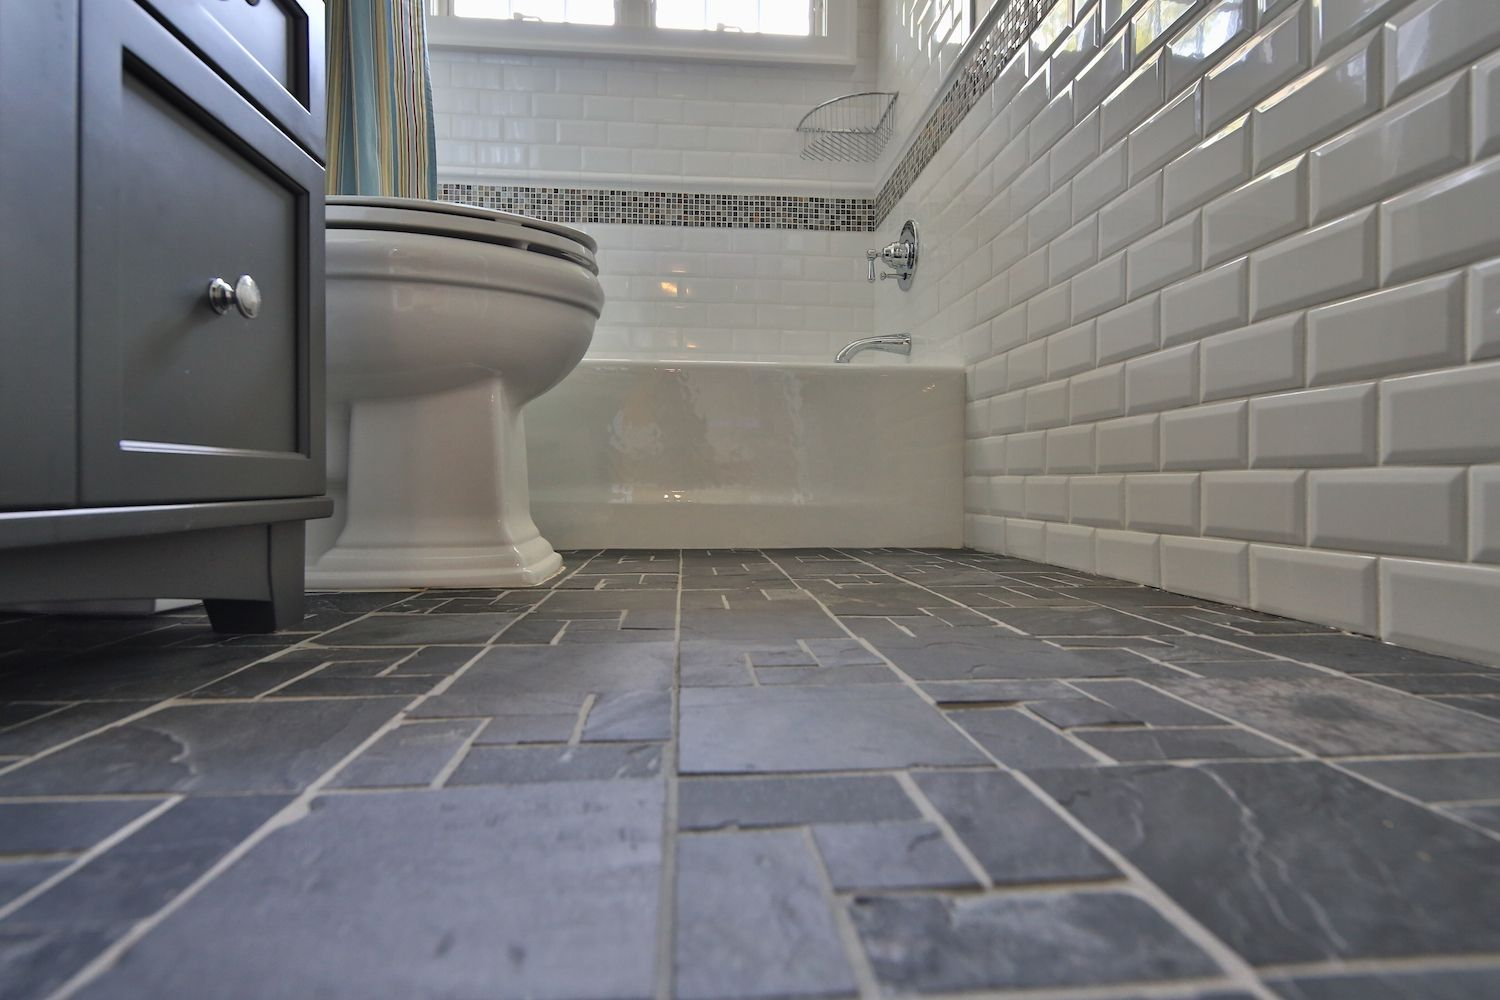 Natural Stone Flooring Might Be Expensive However Provides The Most Elegant And Durable Floors Comes In Many Varieties